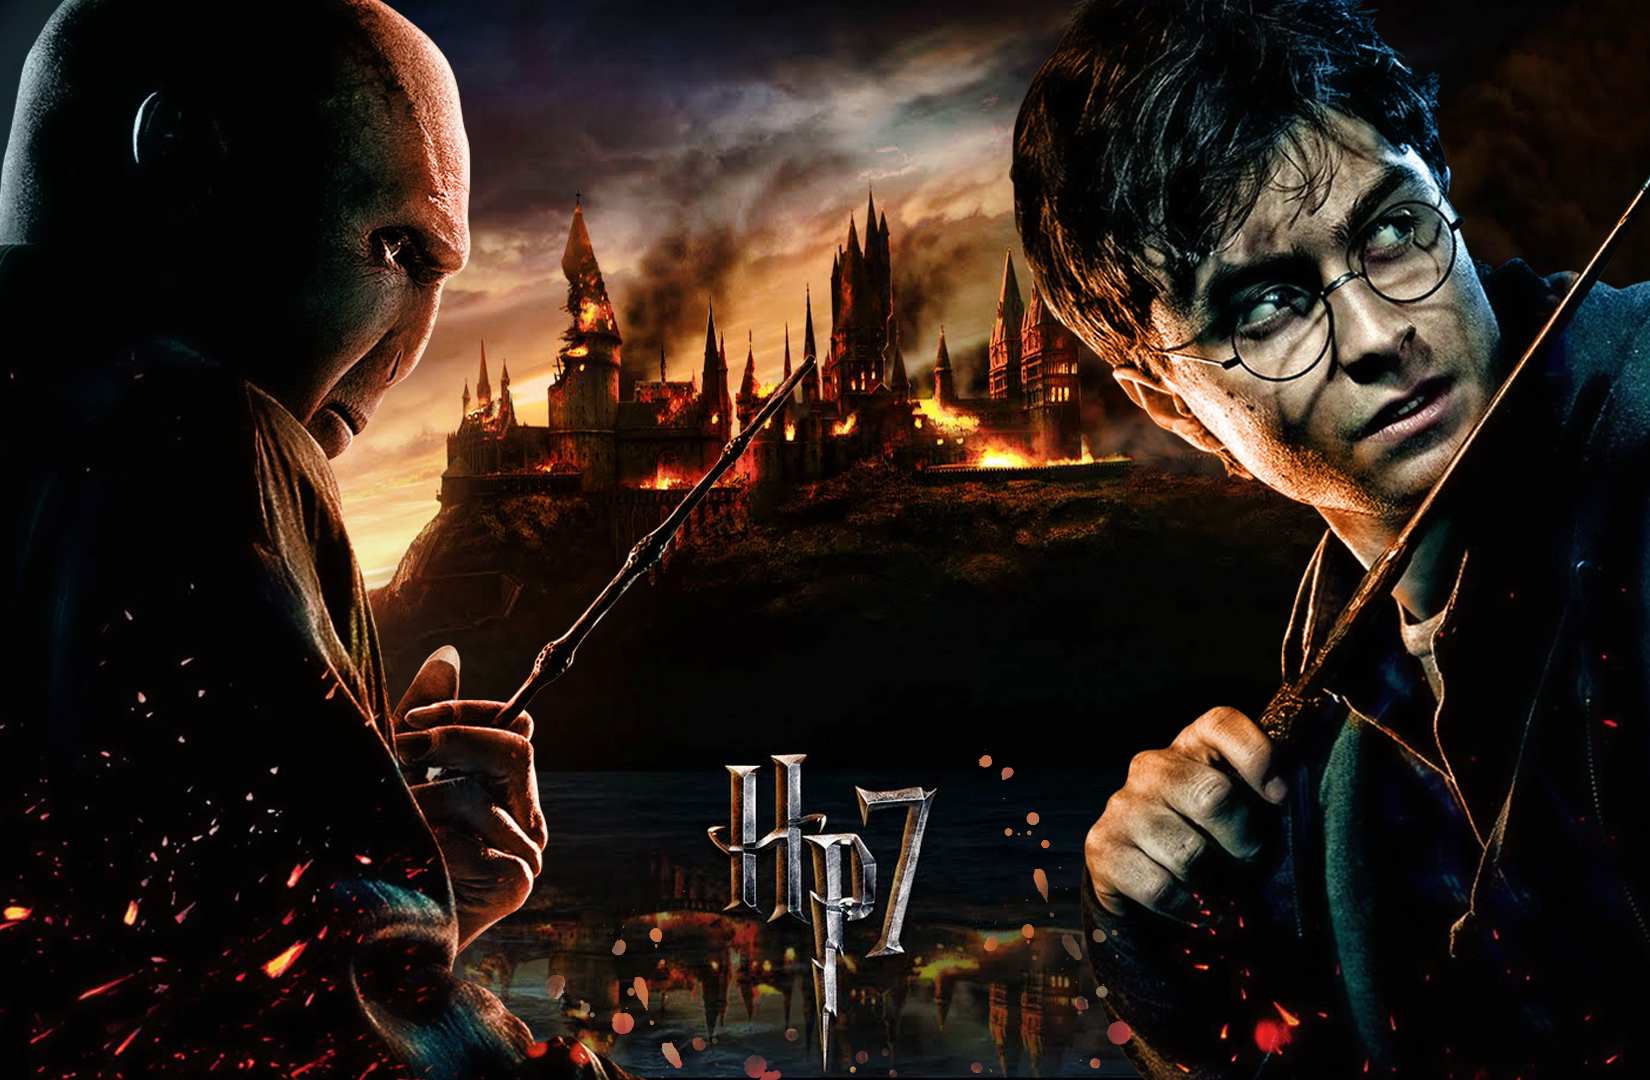 HP-harry-potter-34253856-1650-1080.png